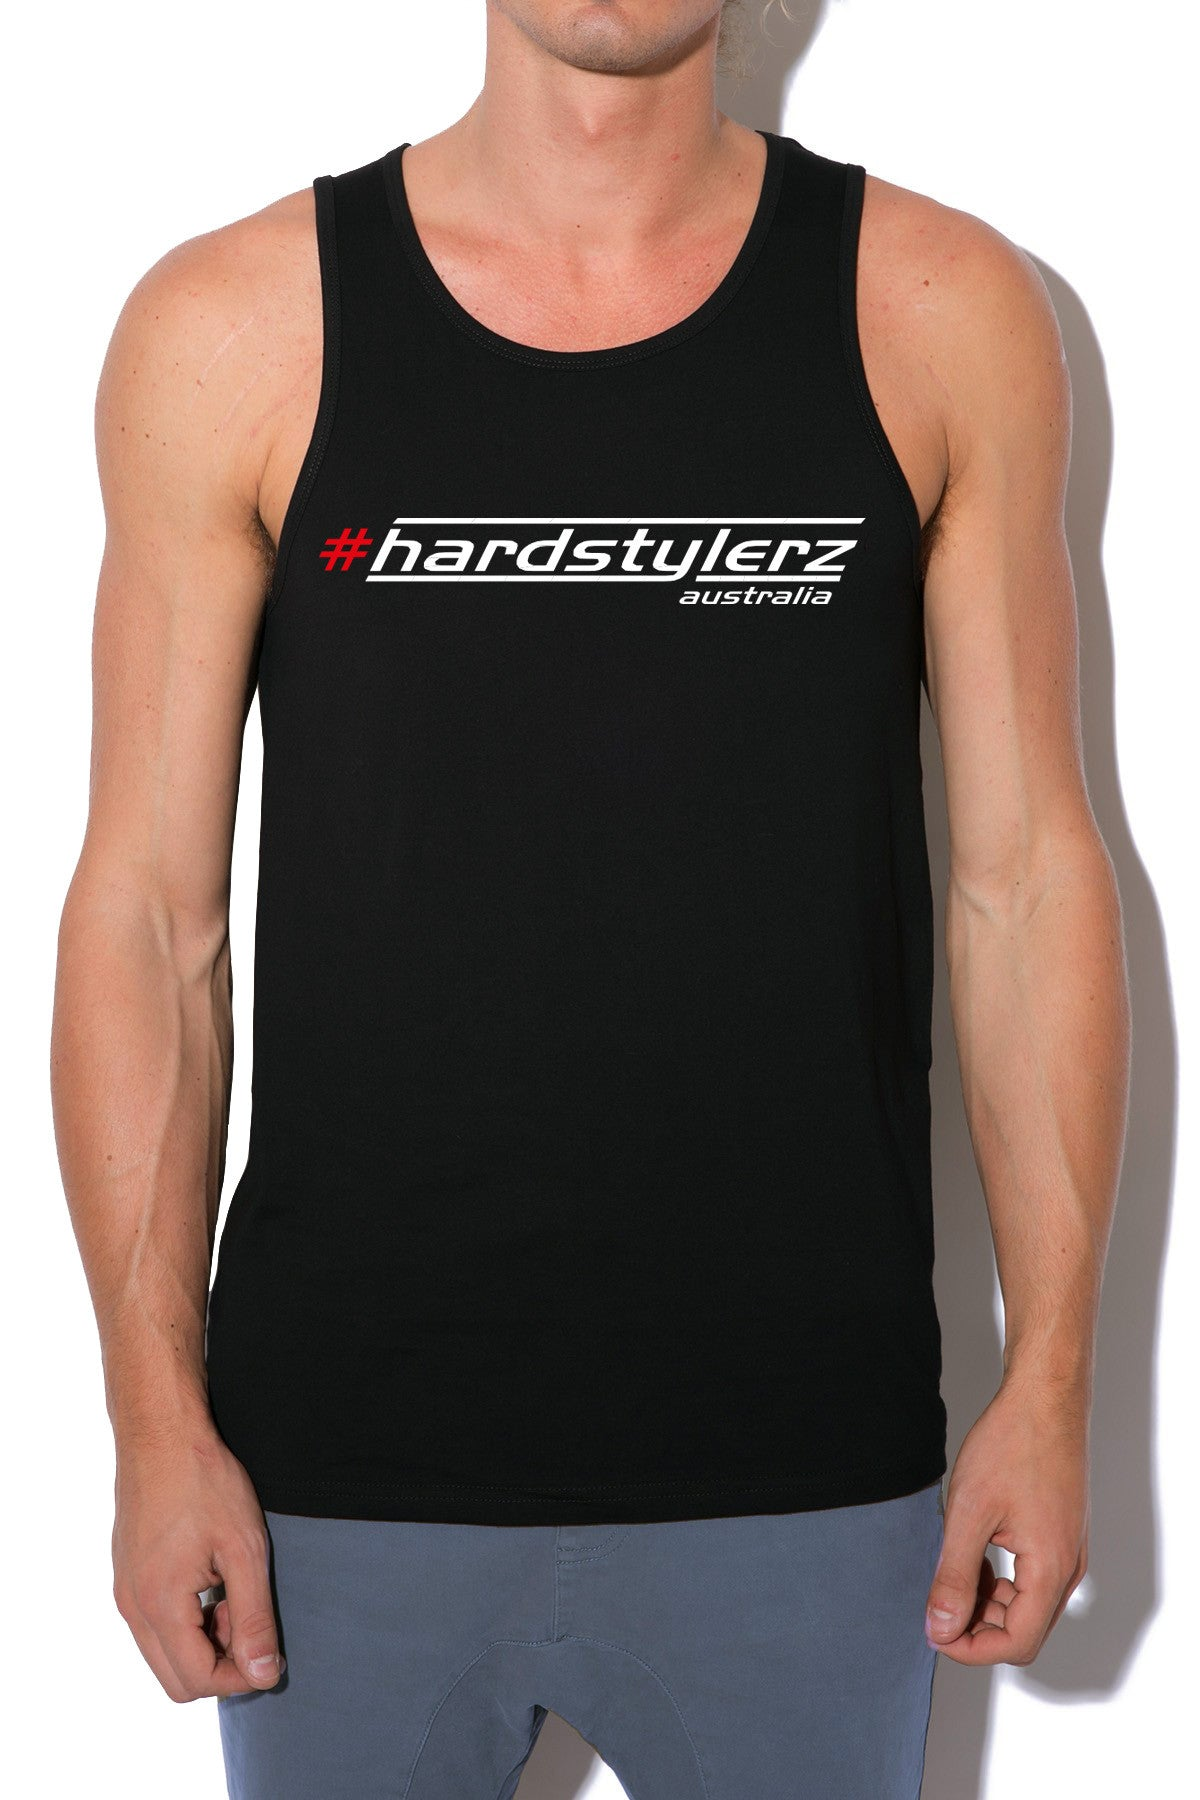 Hardstylerz Men's Black Singlet - SuperFried